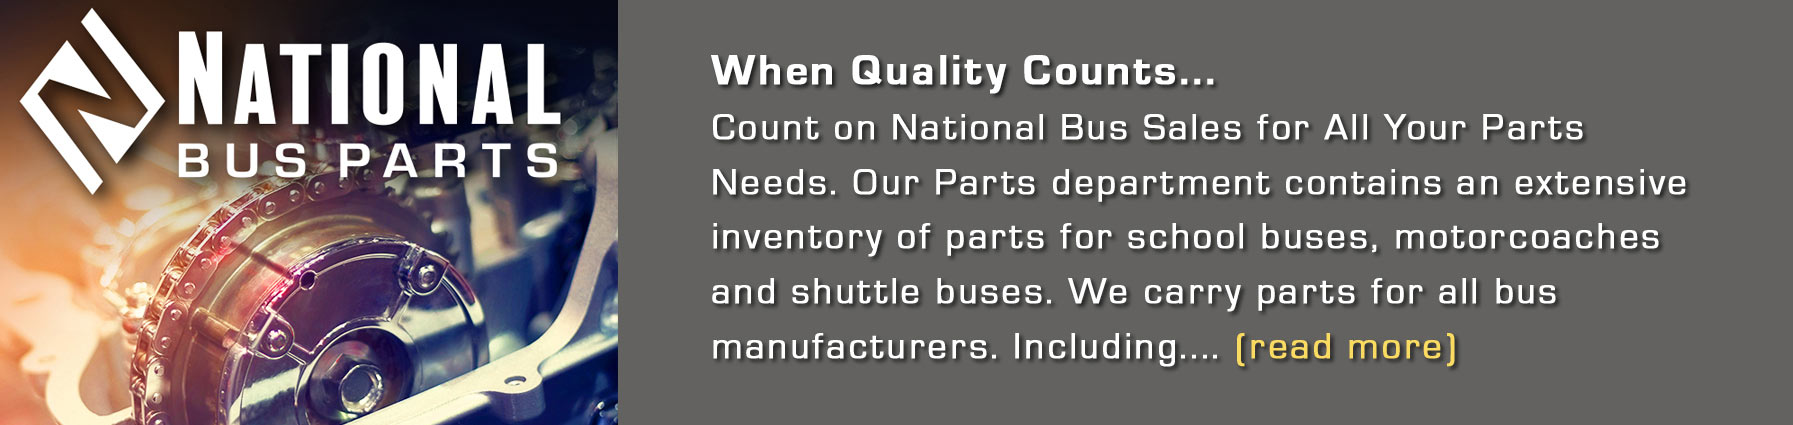 When Quality Counts... Count on National Bus Sales for All Your Parts Needs.  Our Parts department contains an extensive inventory of parts for school buses, motorcoaches, and shuttle buses.  We carry parts for all bus manufacturers.